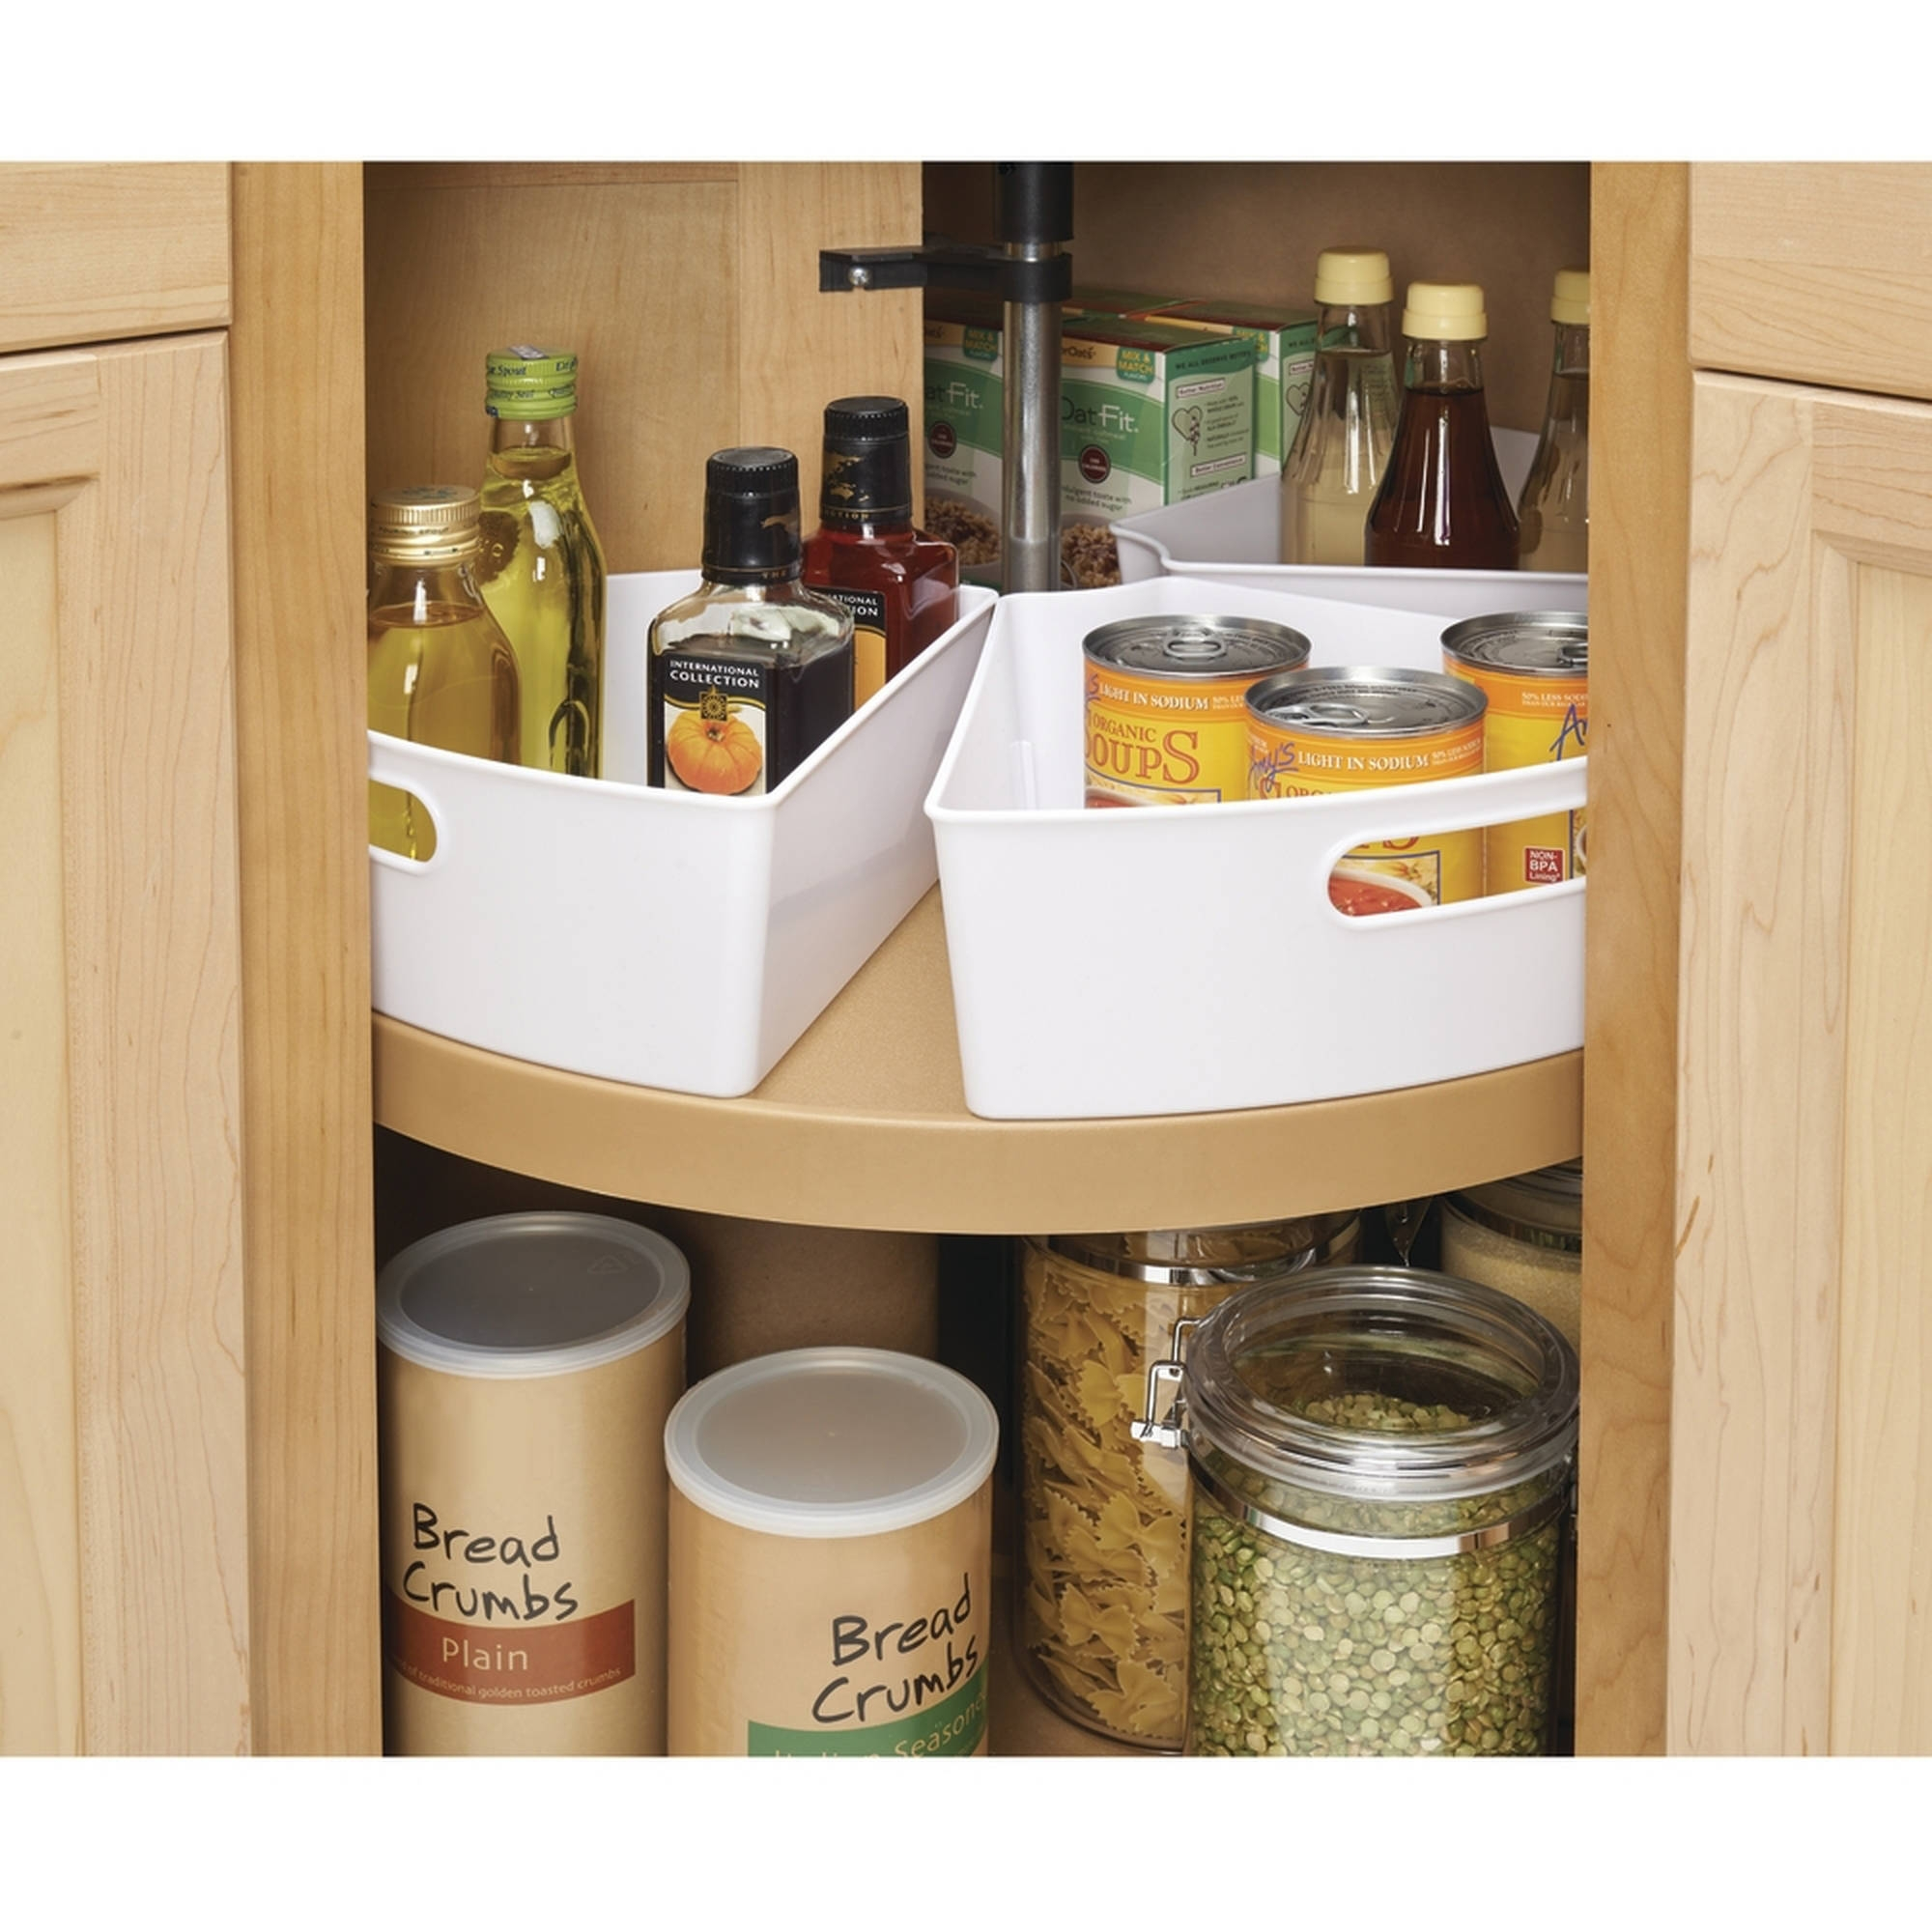 Lazy Susan Turntable Organizers With Regard To Cupboard Organizers (Image 17 of 25)